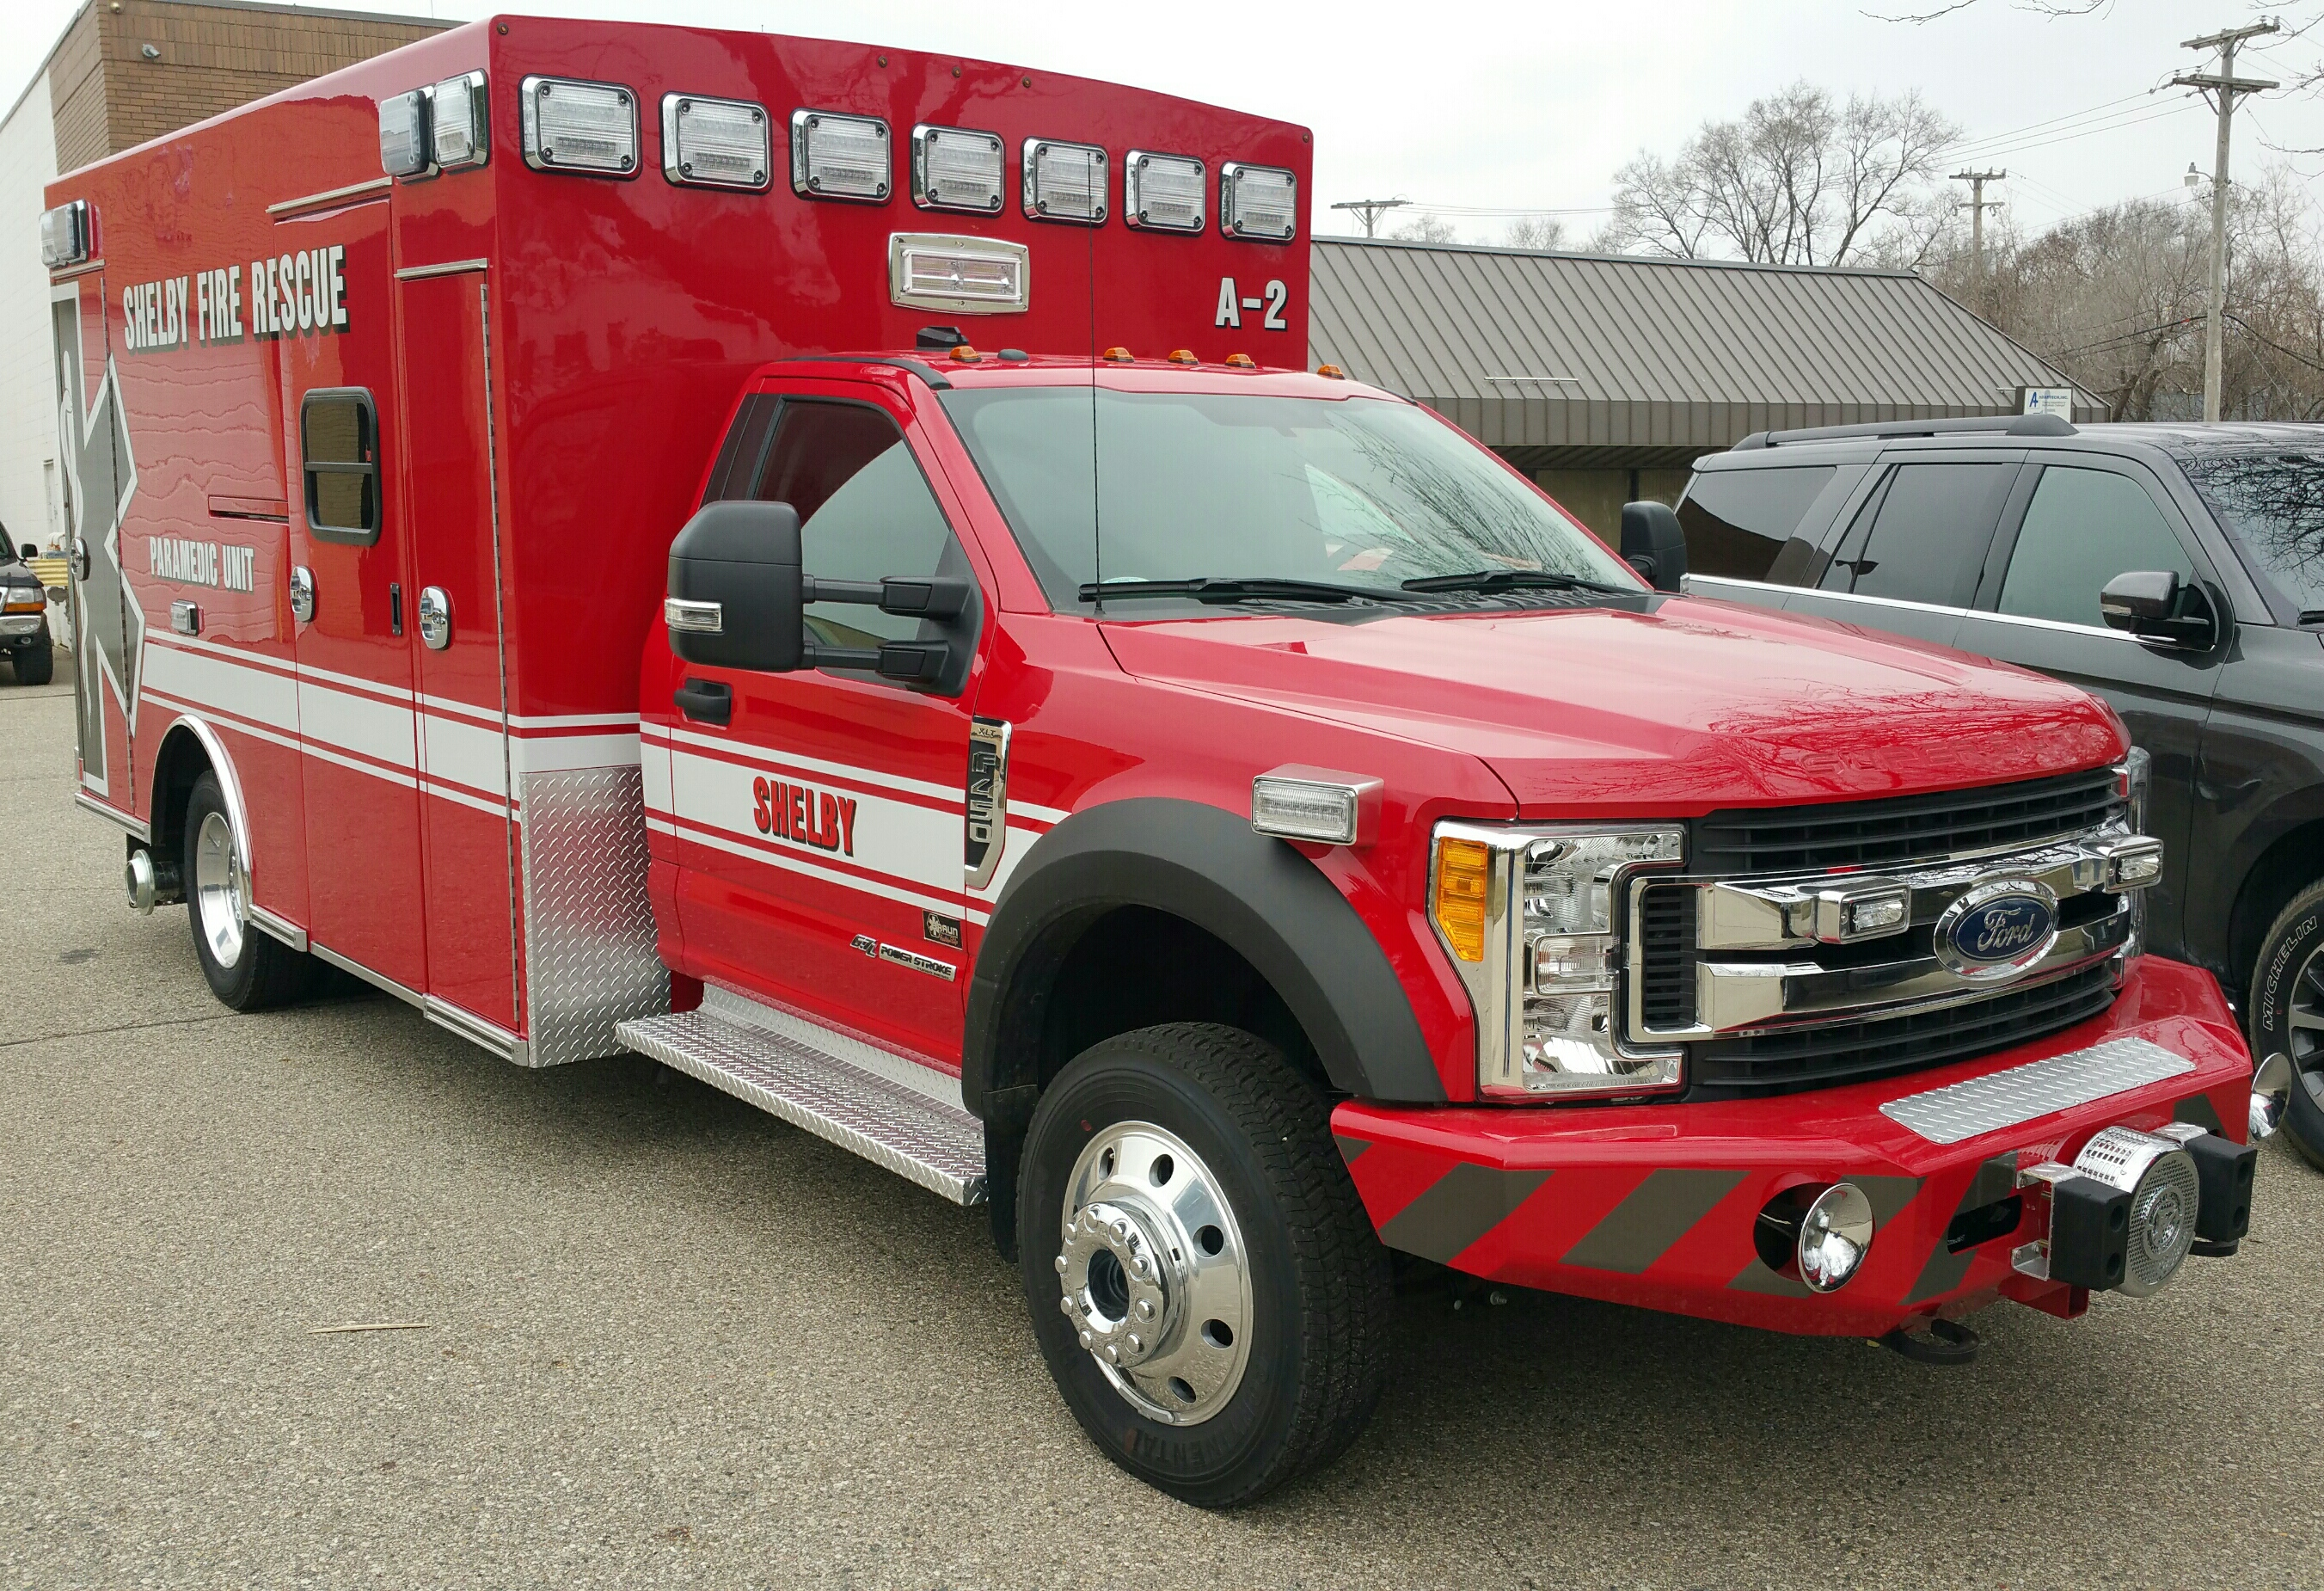 Shelby Fire / Rescue